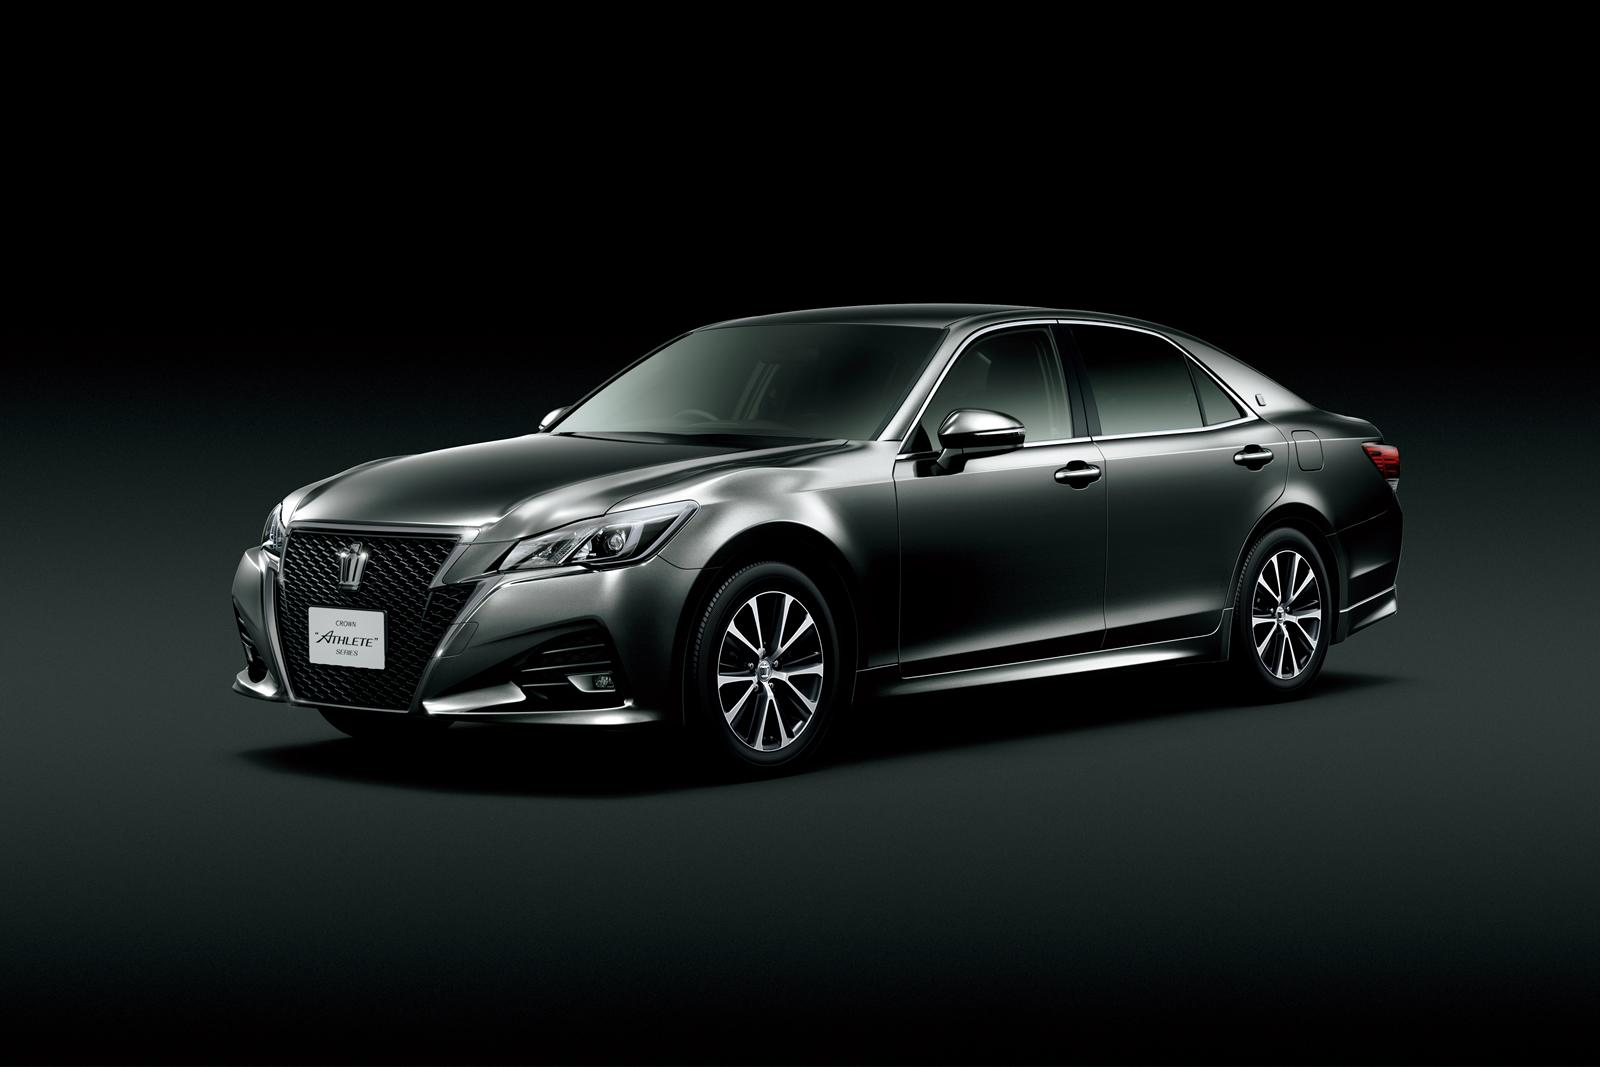 2014 Toyota Crown Athlete Is a Cool Sedan You Can't Have ...